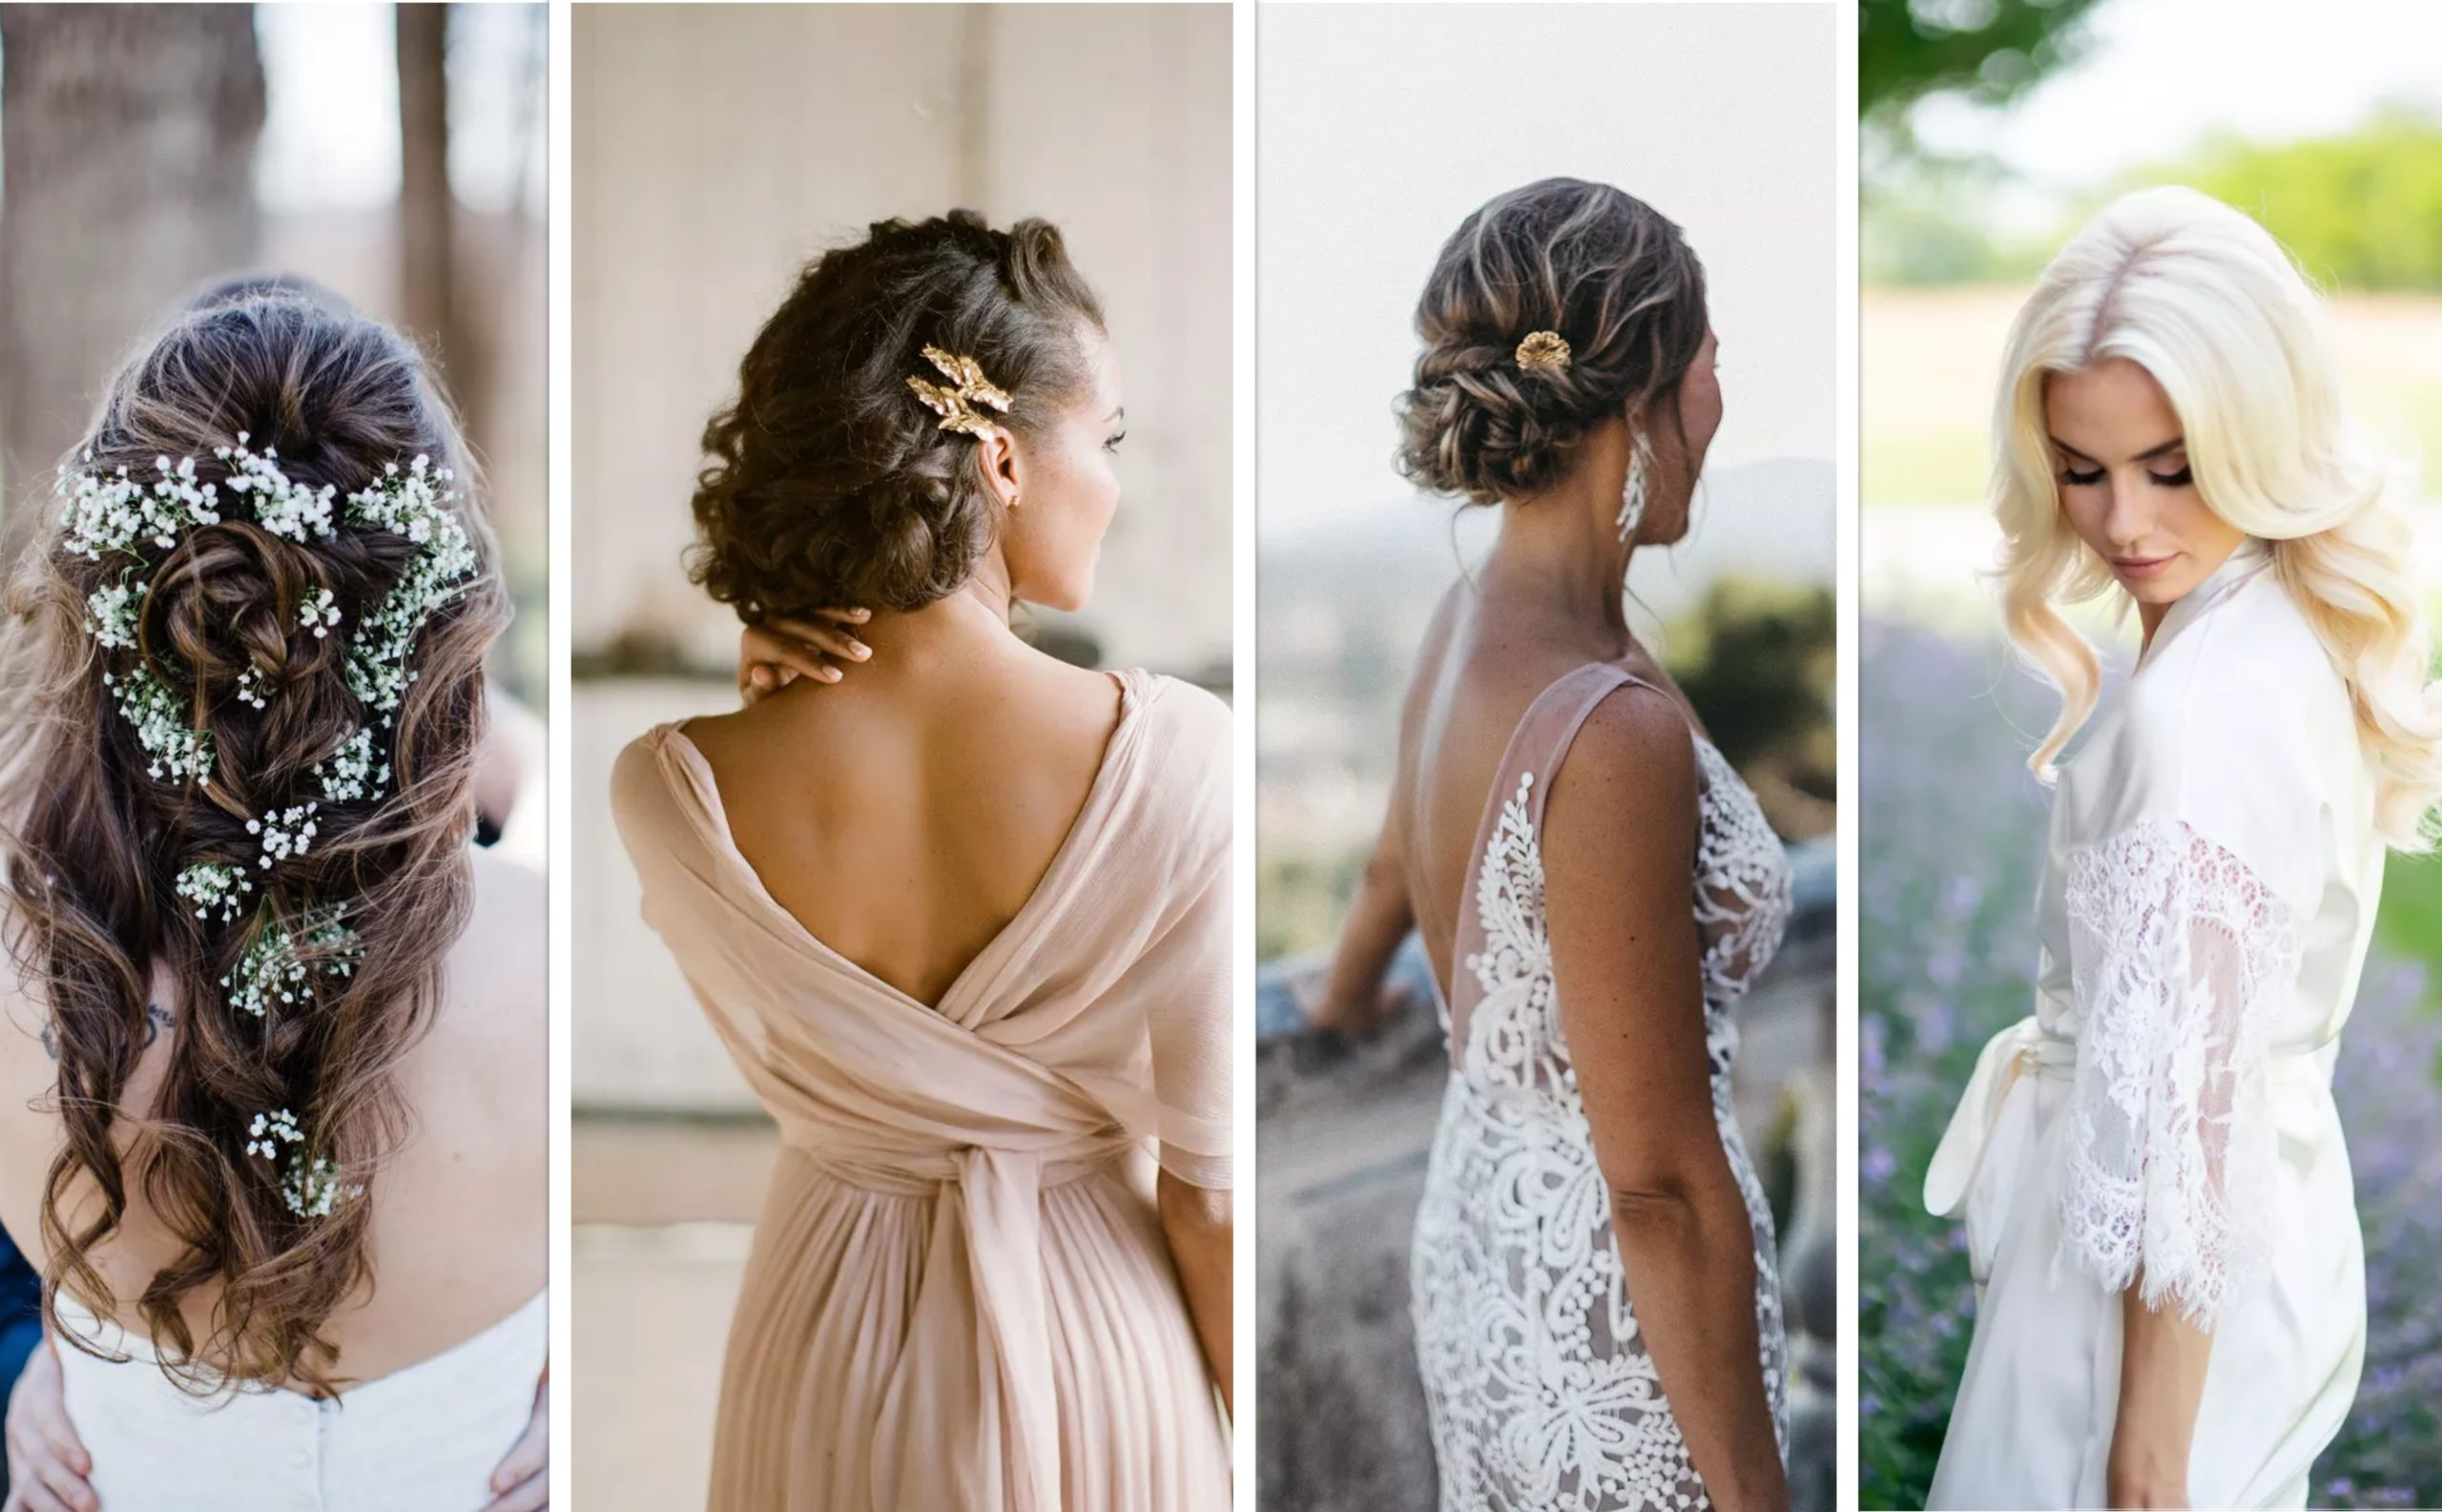 40 Romantic Bridal Hairstyles to Wear on Your Wedding Day | Top Fashion News